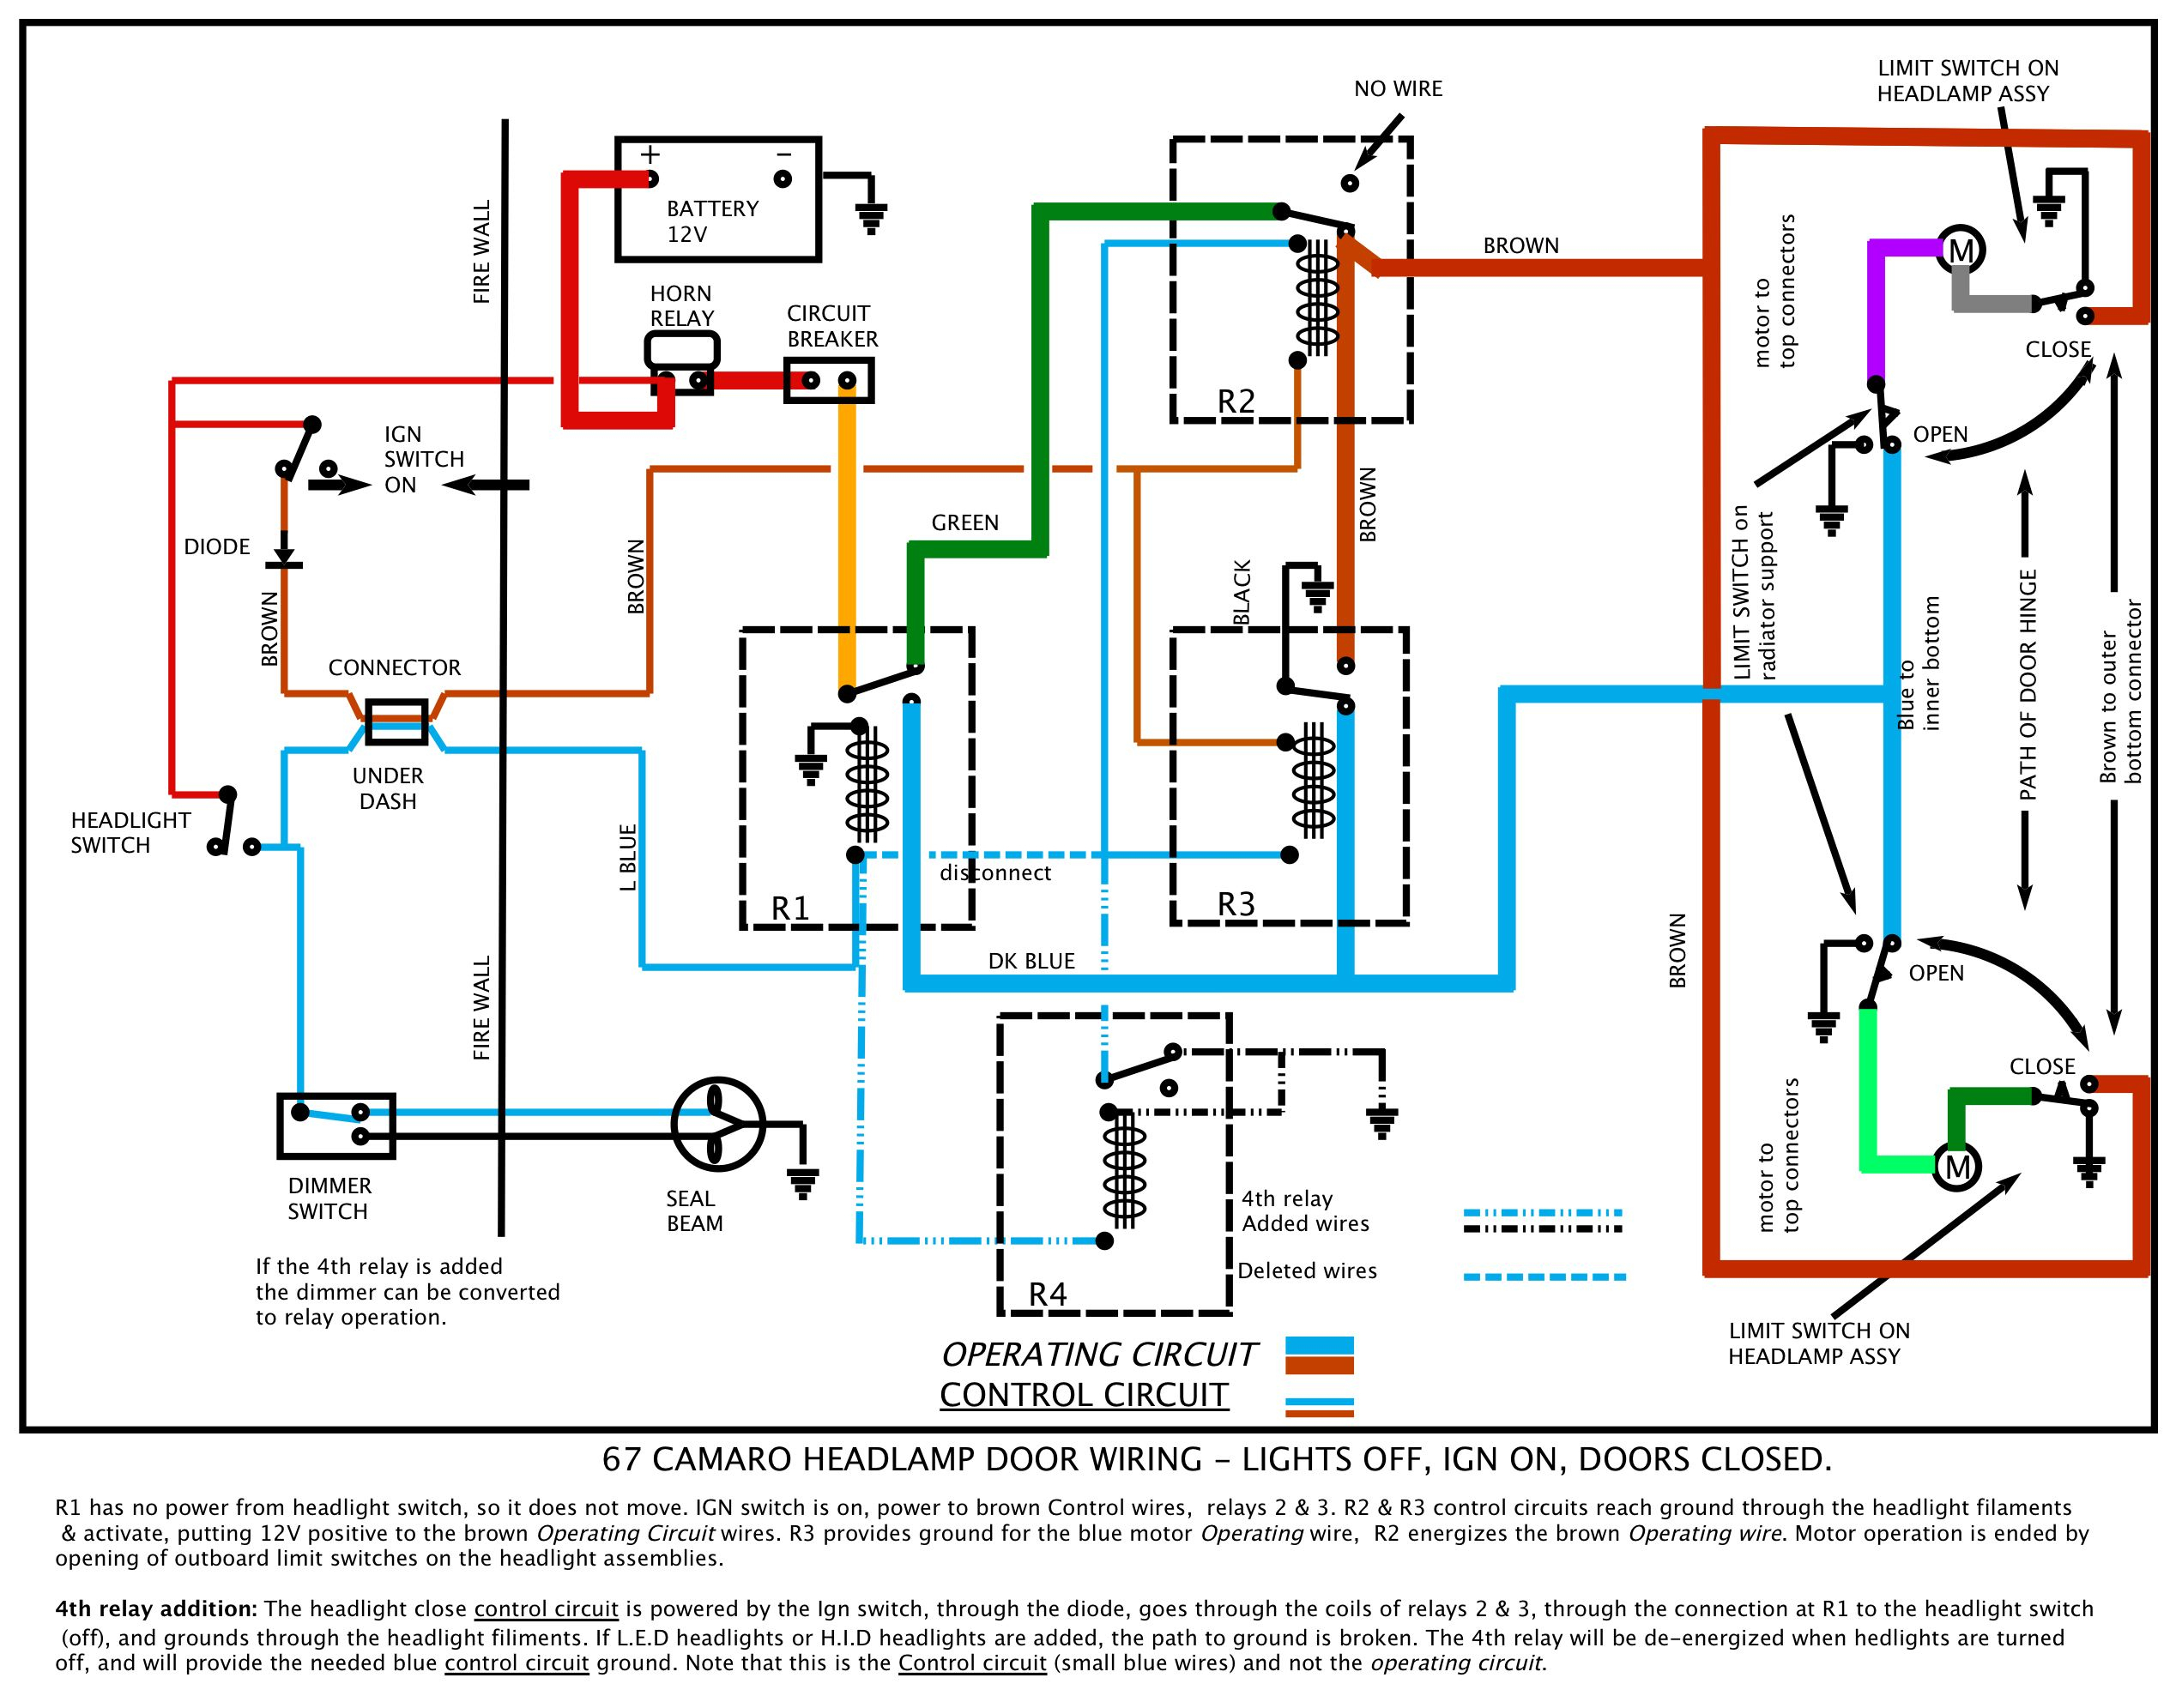 H4 Wiring Upgrade Diagram 67 Camaro | Wiring Diagram - H4 Wiring Diagram